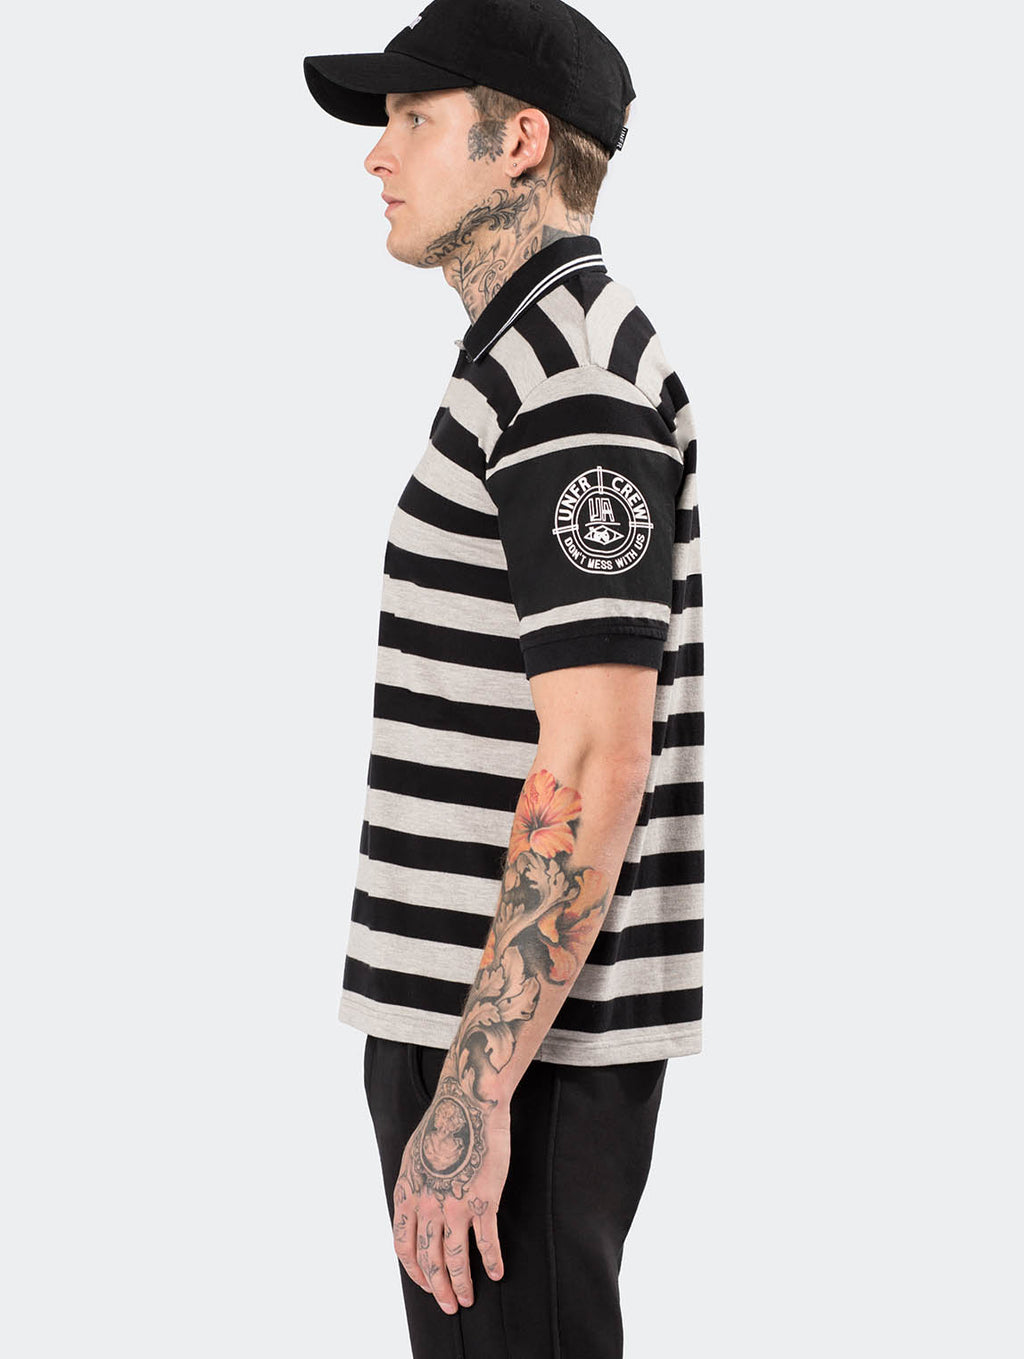 YARN DYE STRIPED POLOSHIRT - EVERY*